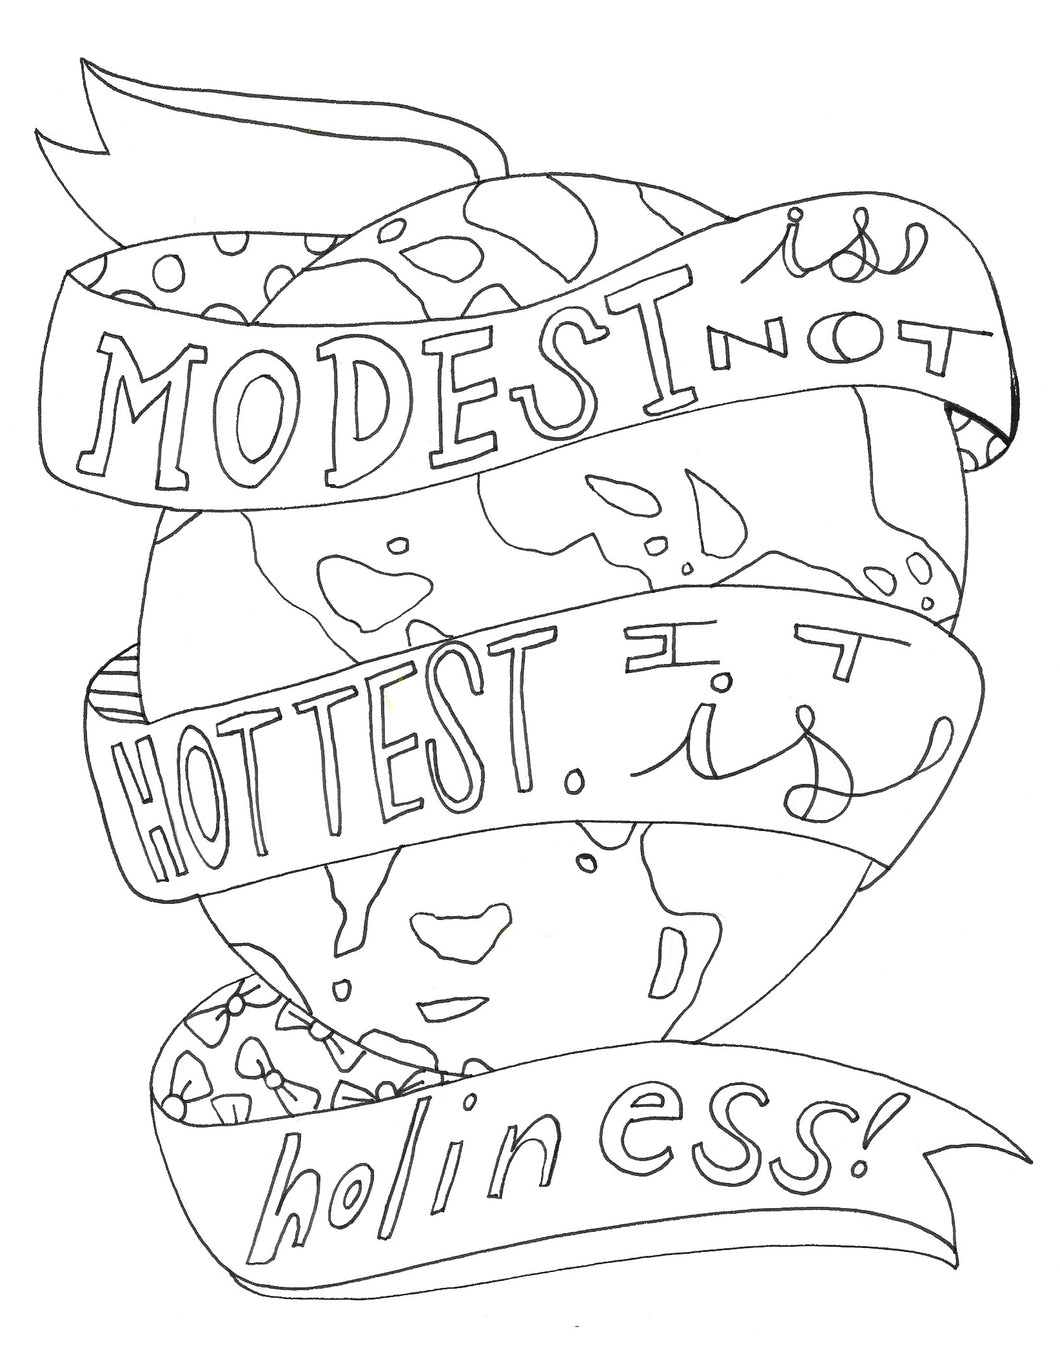 Holiness Quote Coloring Page